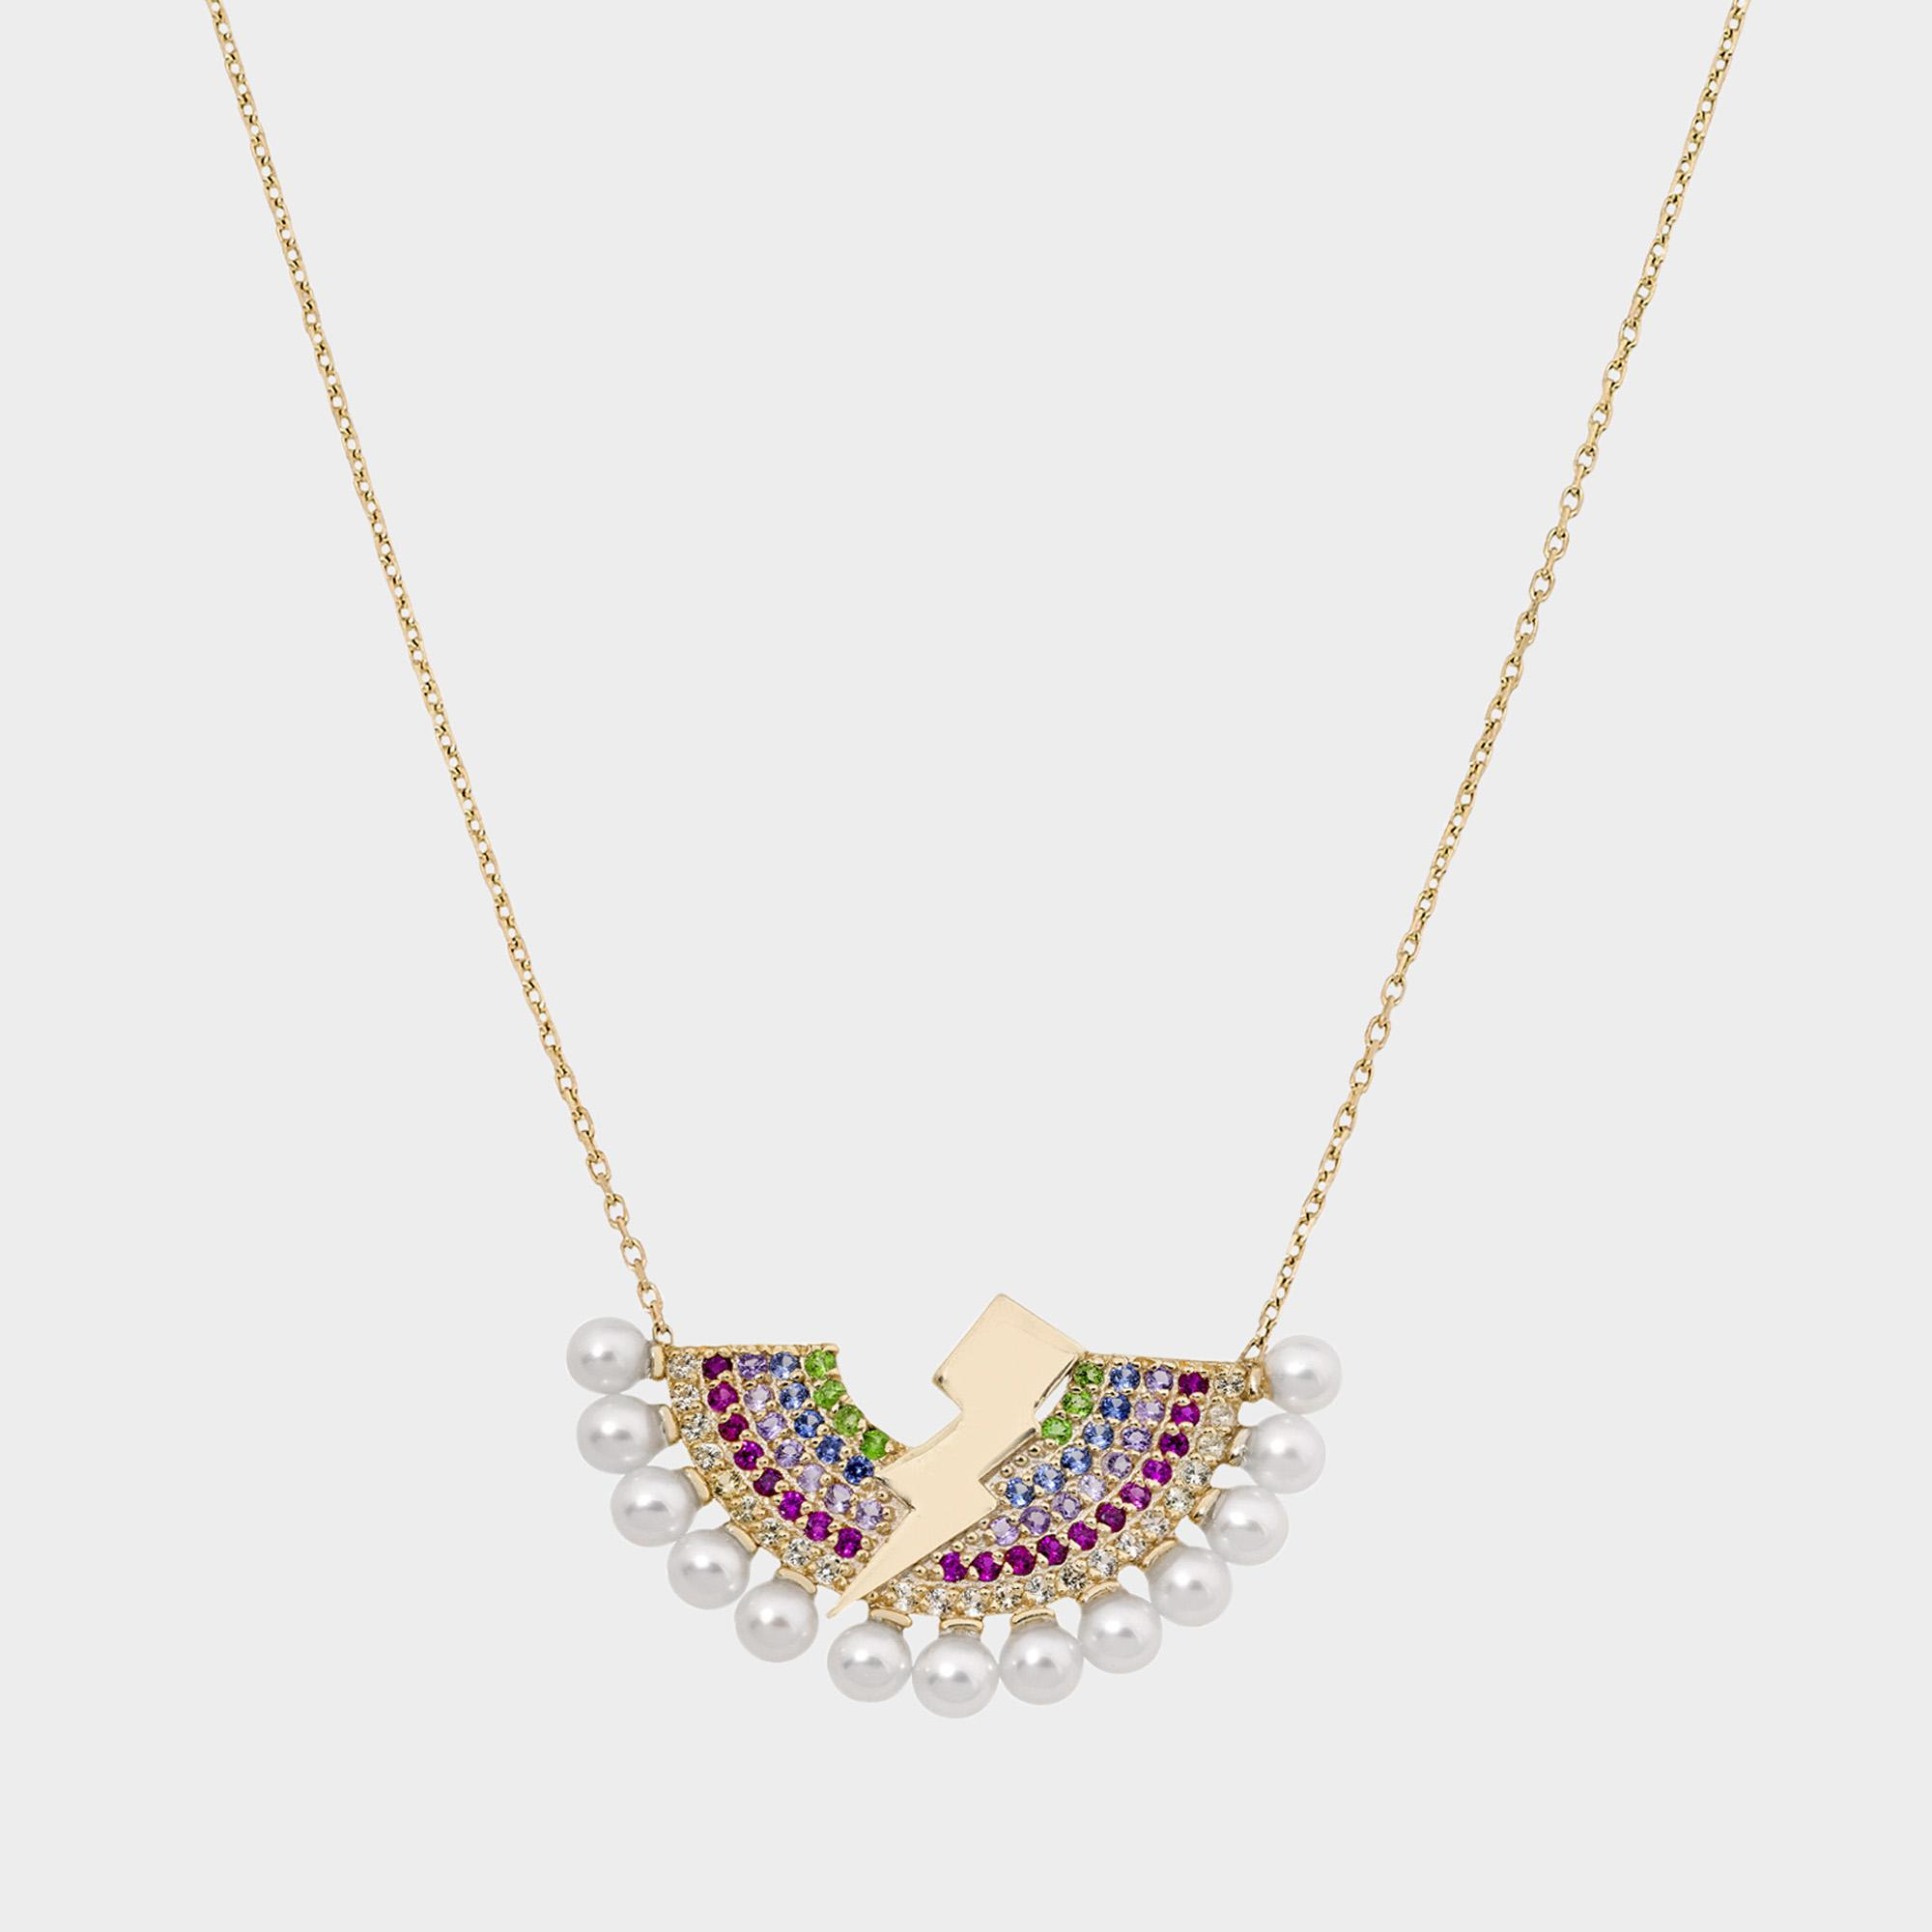 Mermaid Multicolour Necklace in 14K Gold and Precious Stones Anton Heunis VJZim